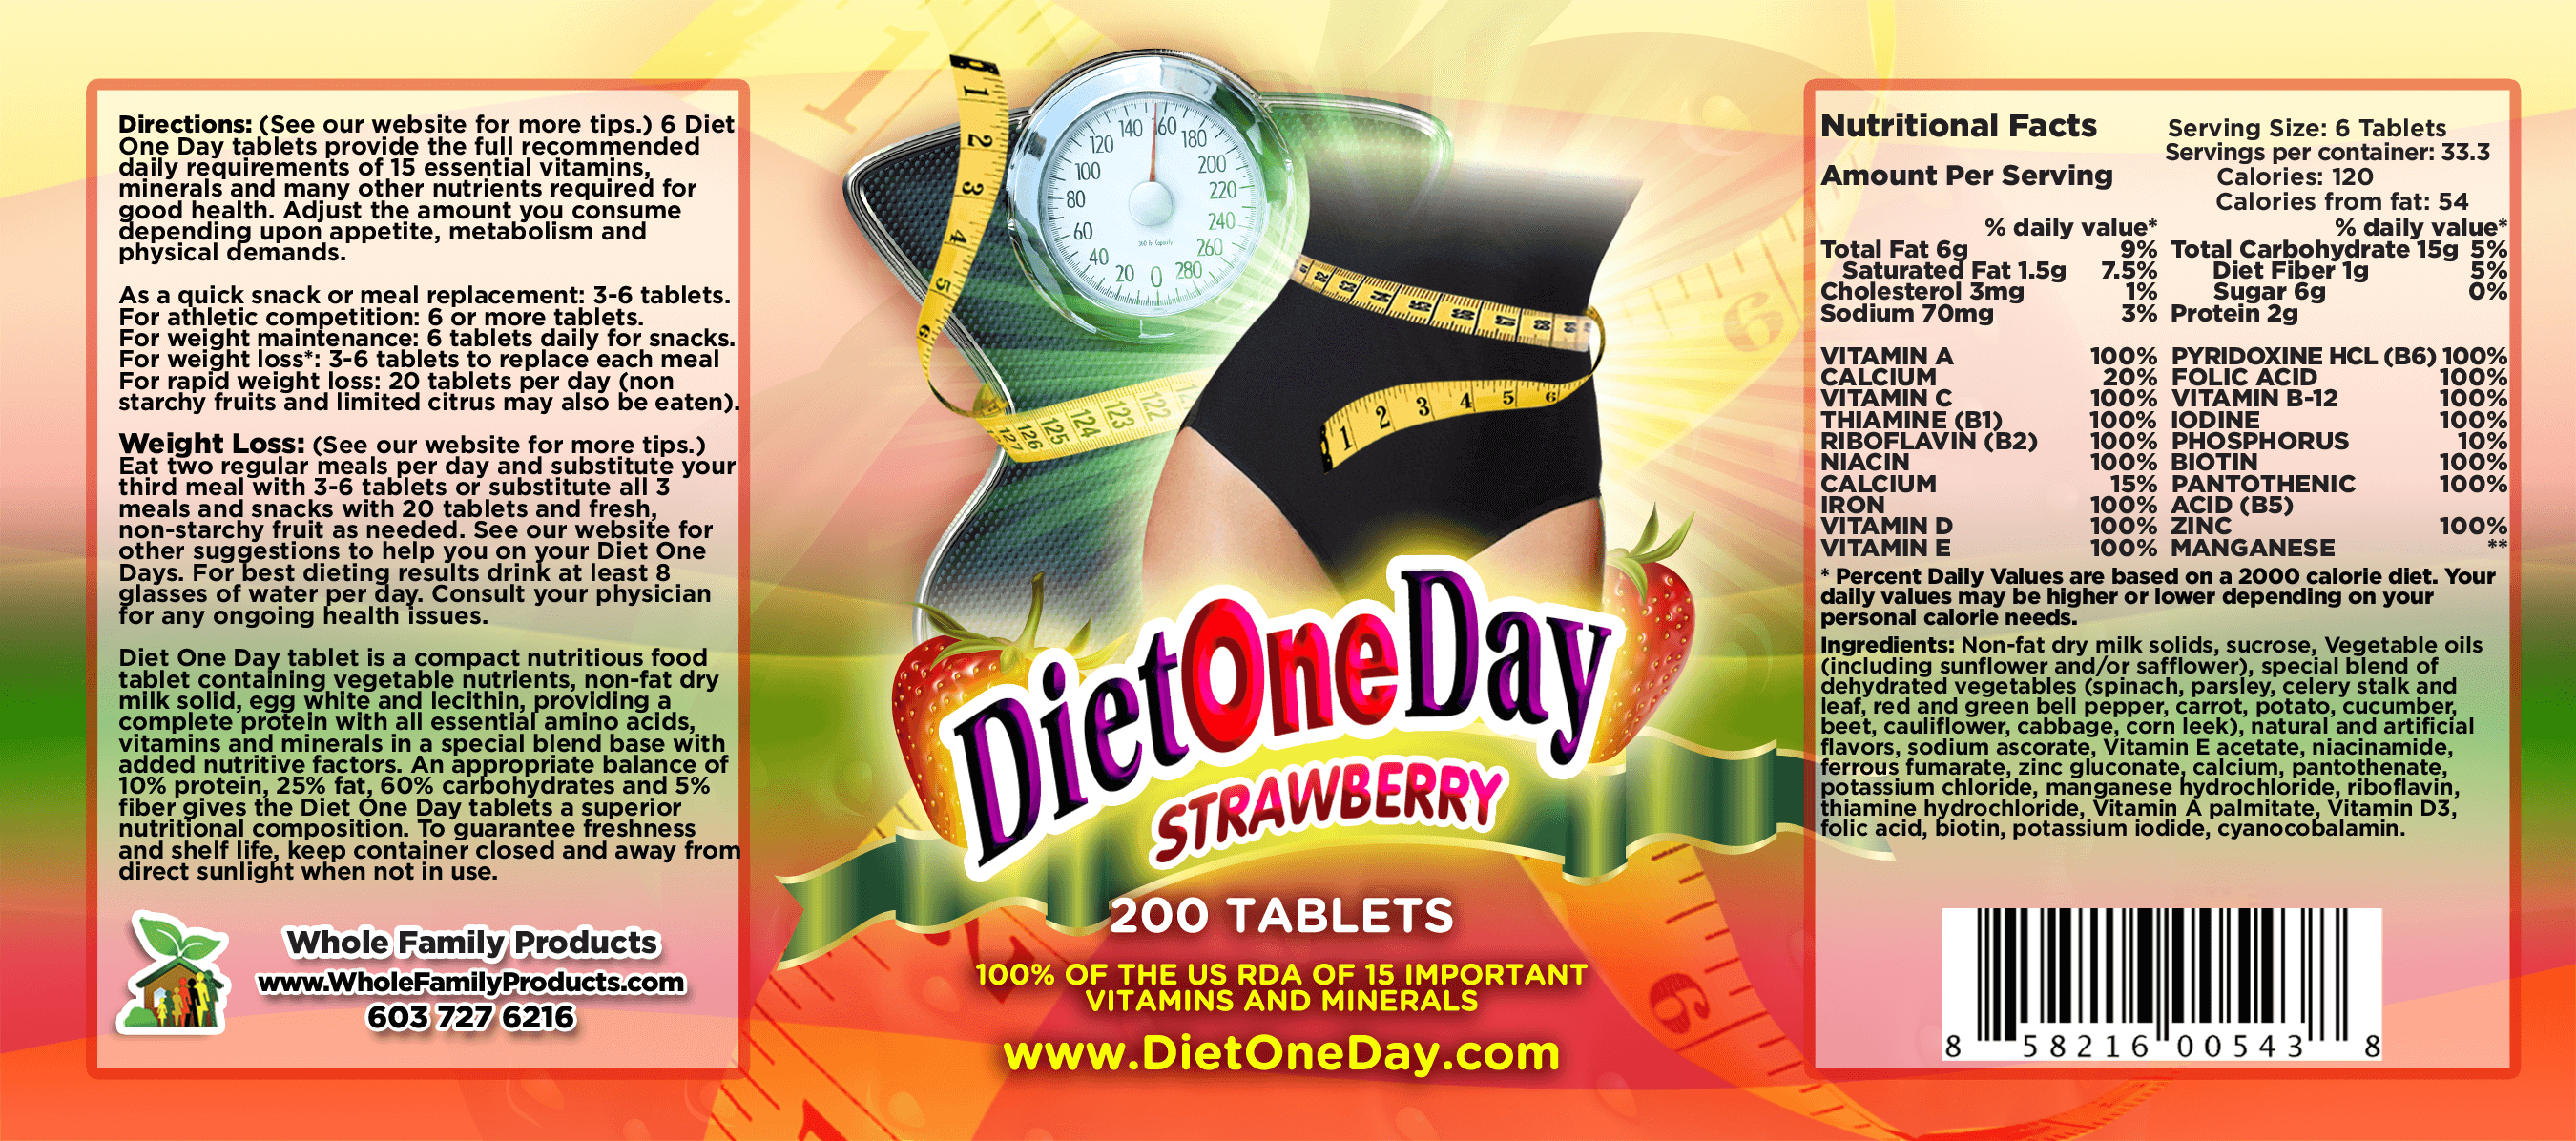 Diet One Day Wafers Strawberry 200ct Product Label